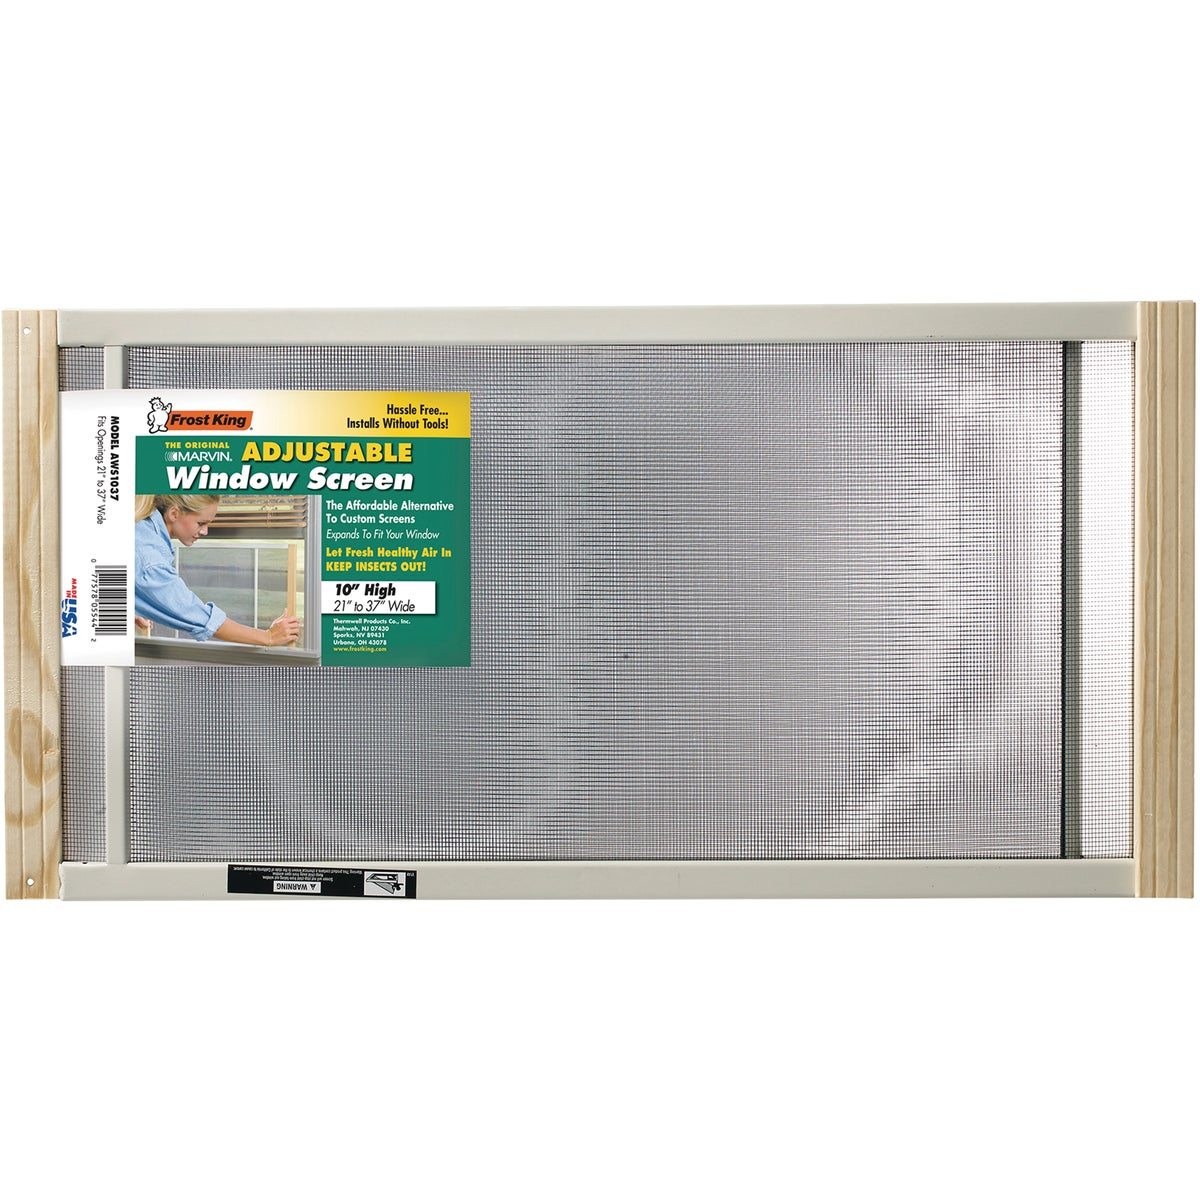 ADJUSTABLE WINDOW SCREEN - AWS1037 by Thermwell Prods Co